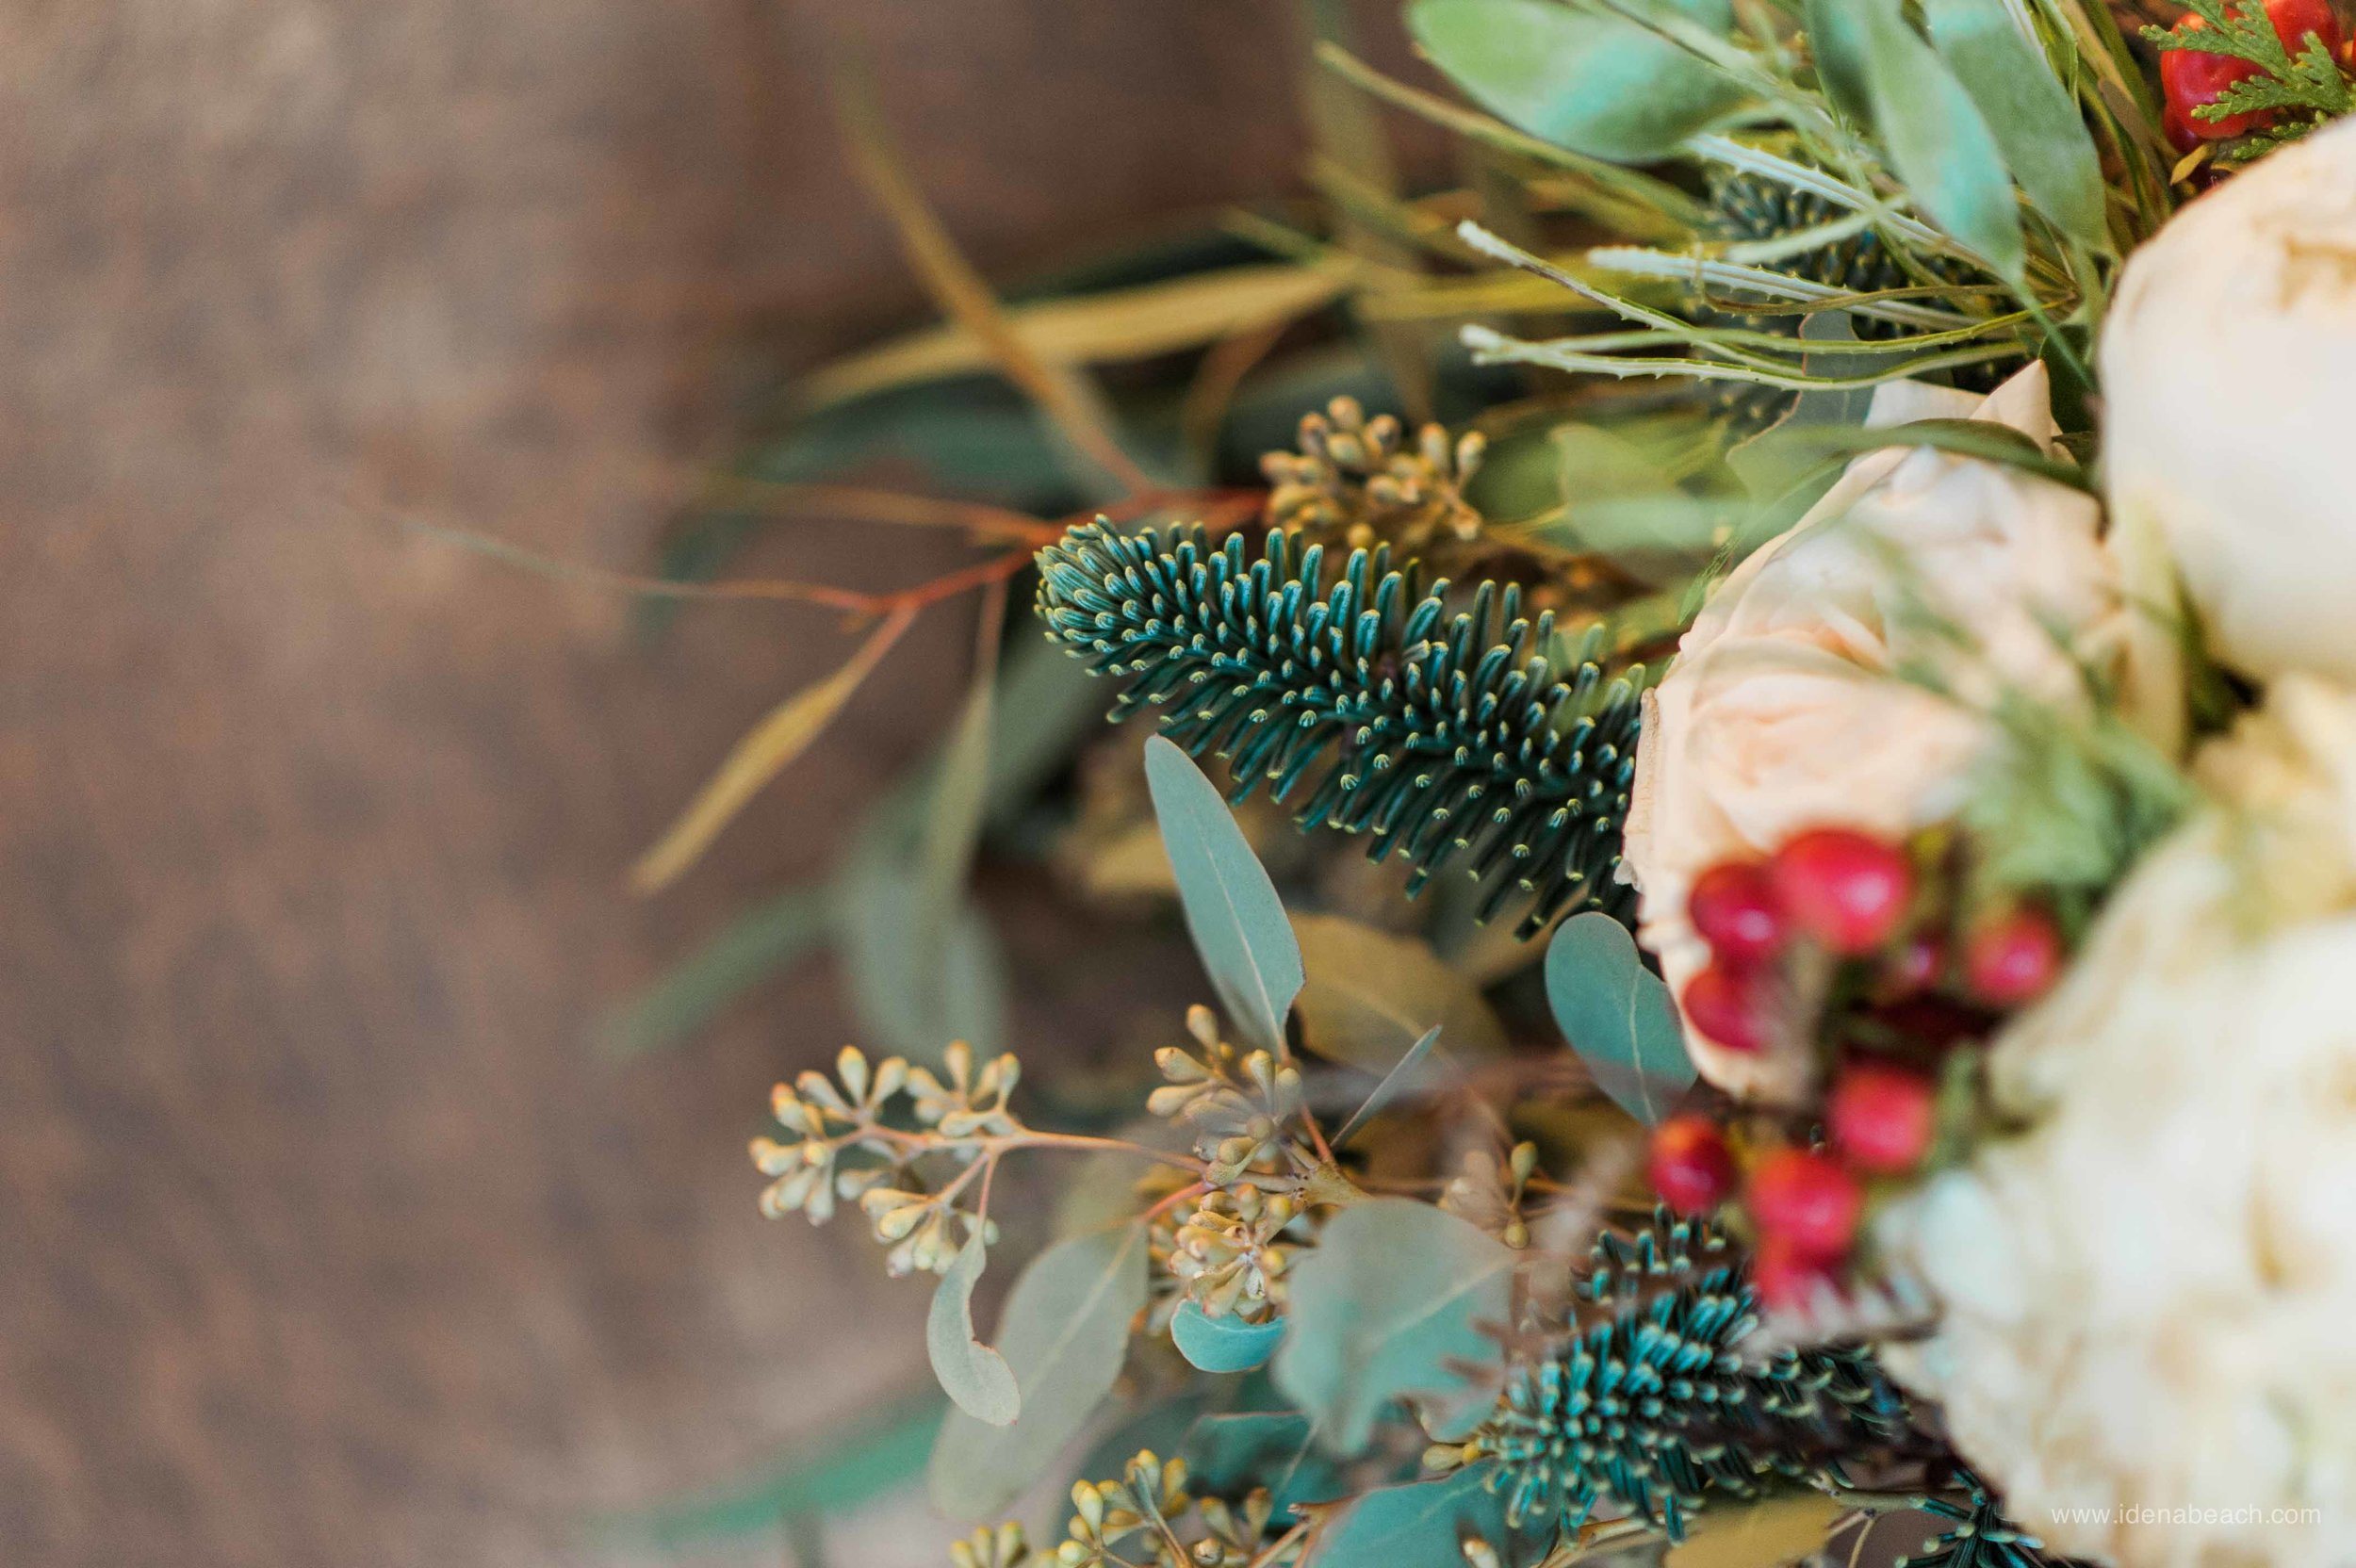 The touch of evergreen made the bouquet smell extra wintery.